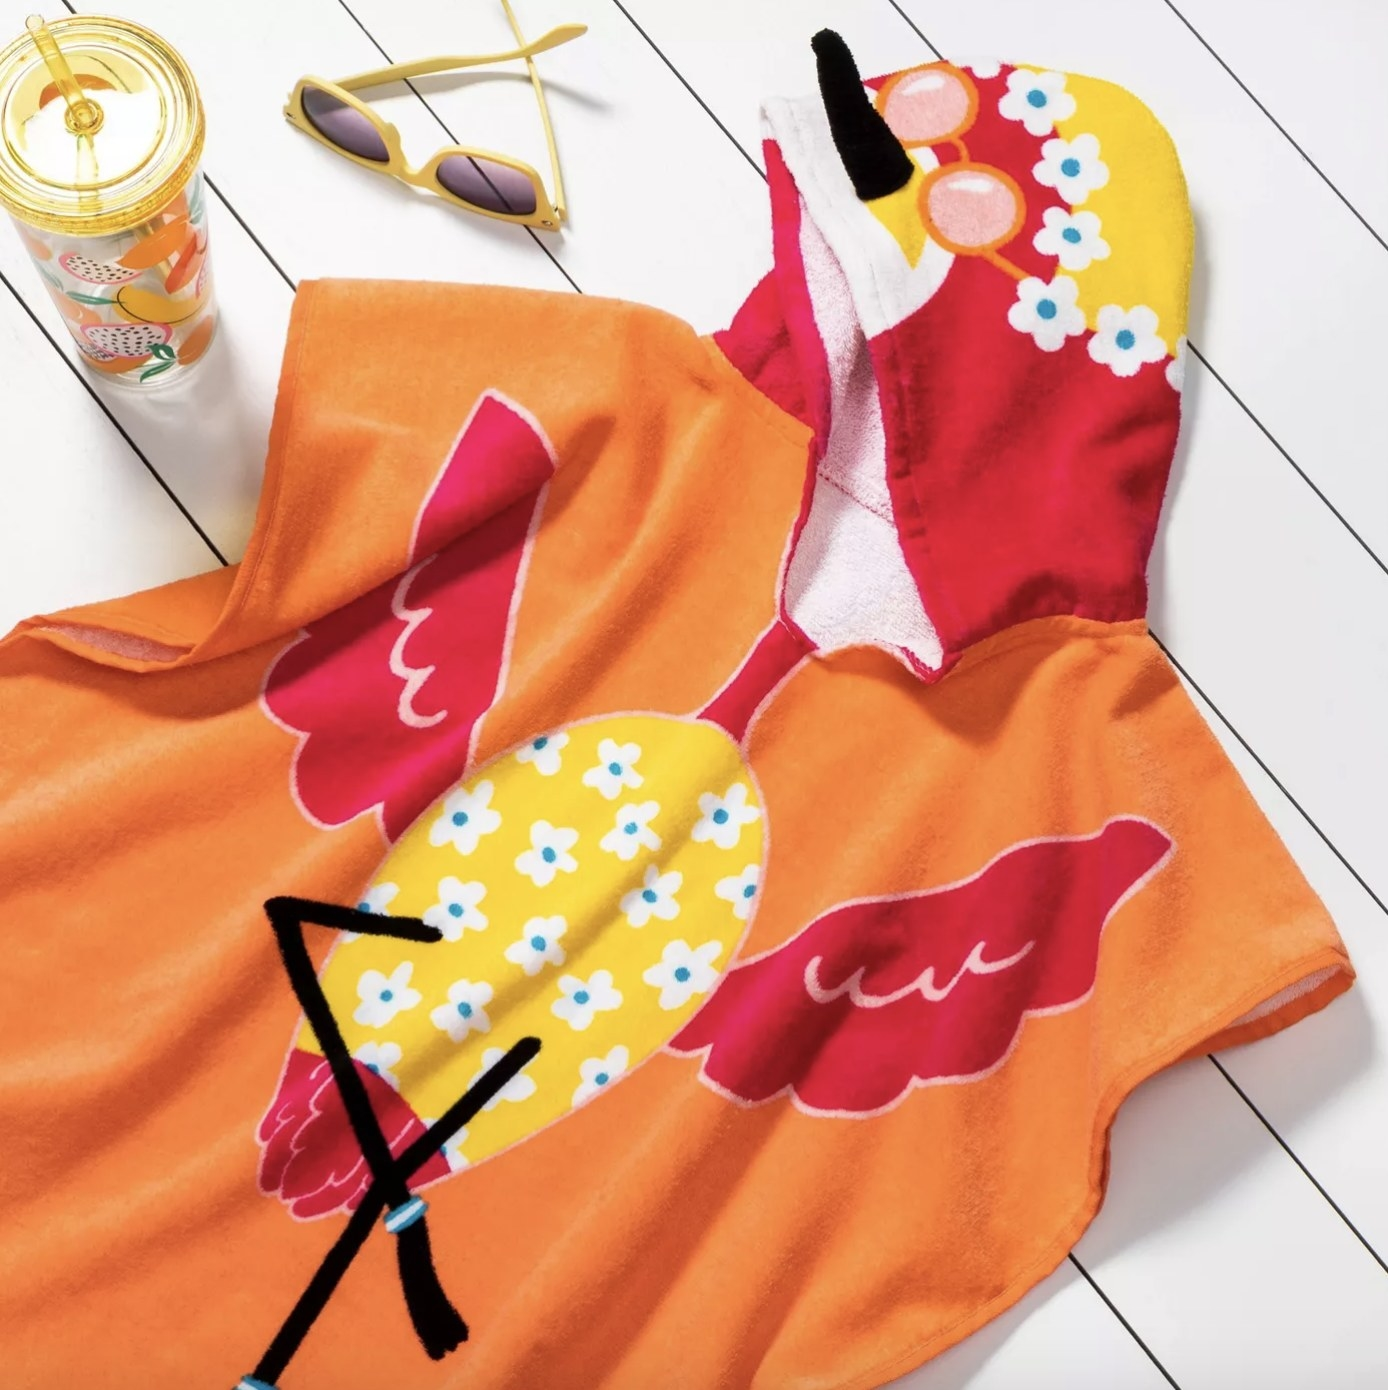 The orange hooded towel has a red flamingo wearing sunglasses and yellow floral clothing